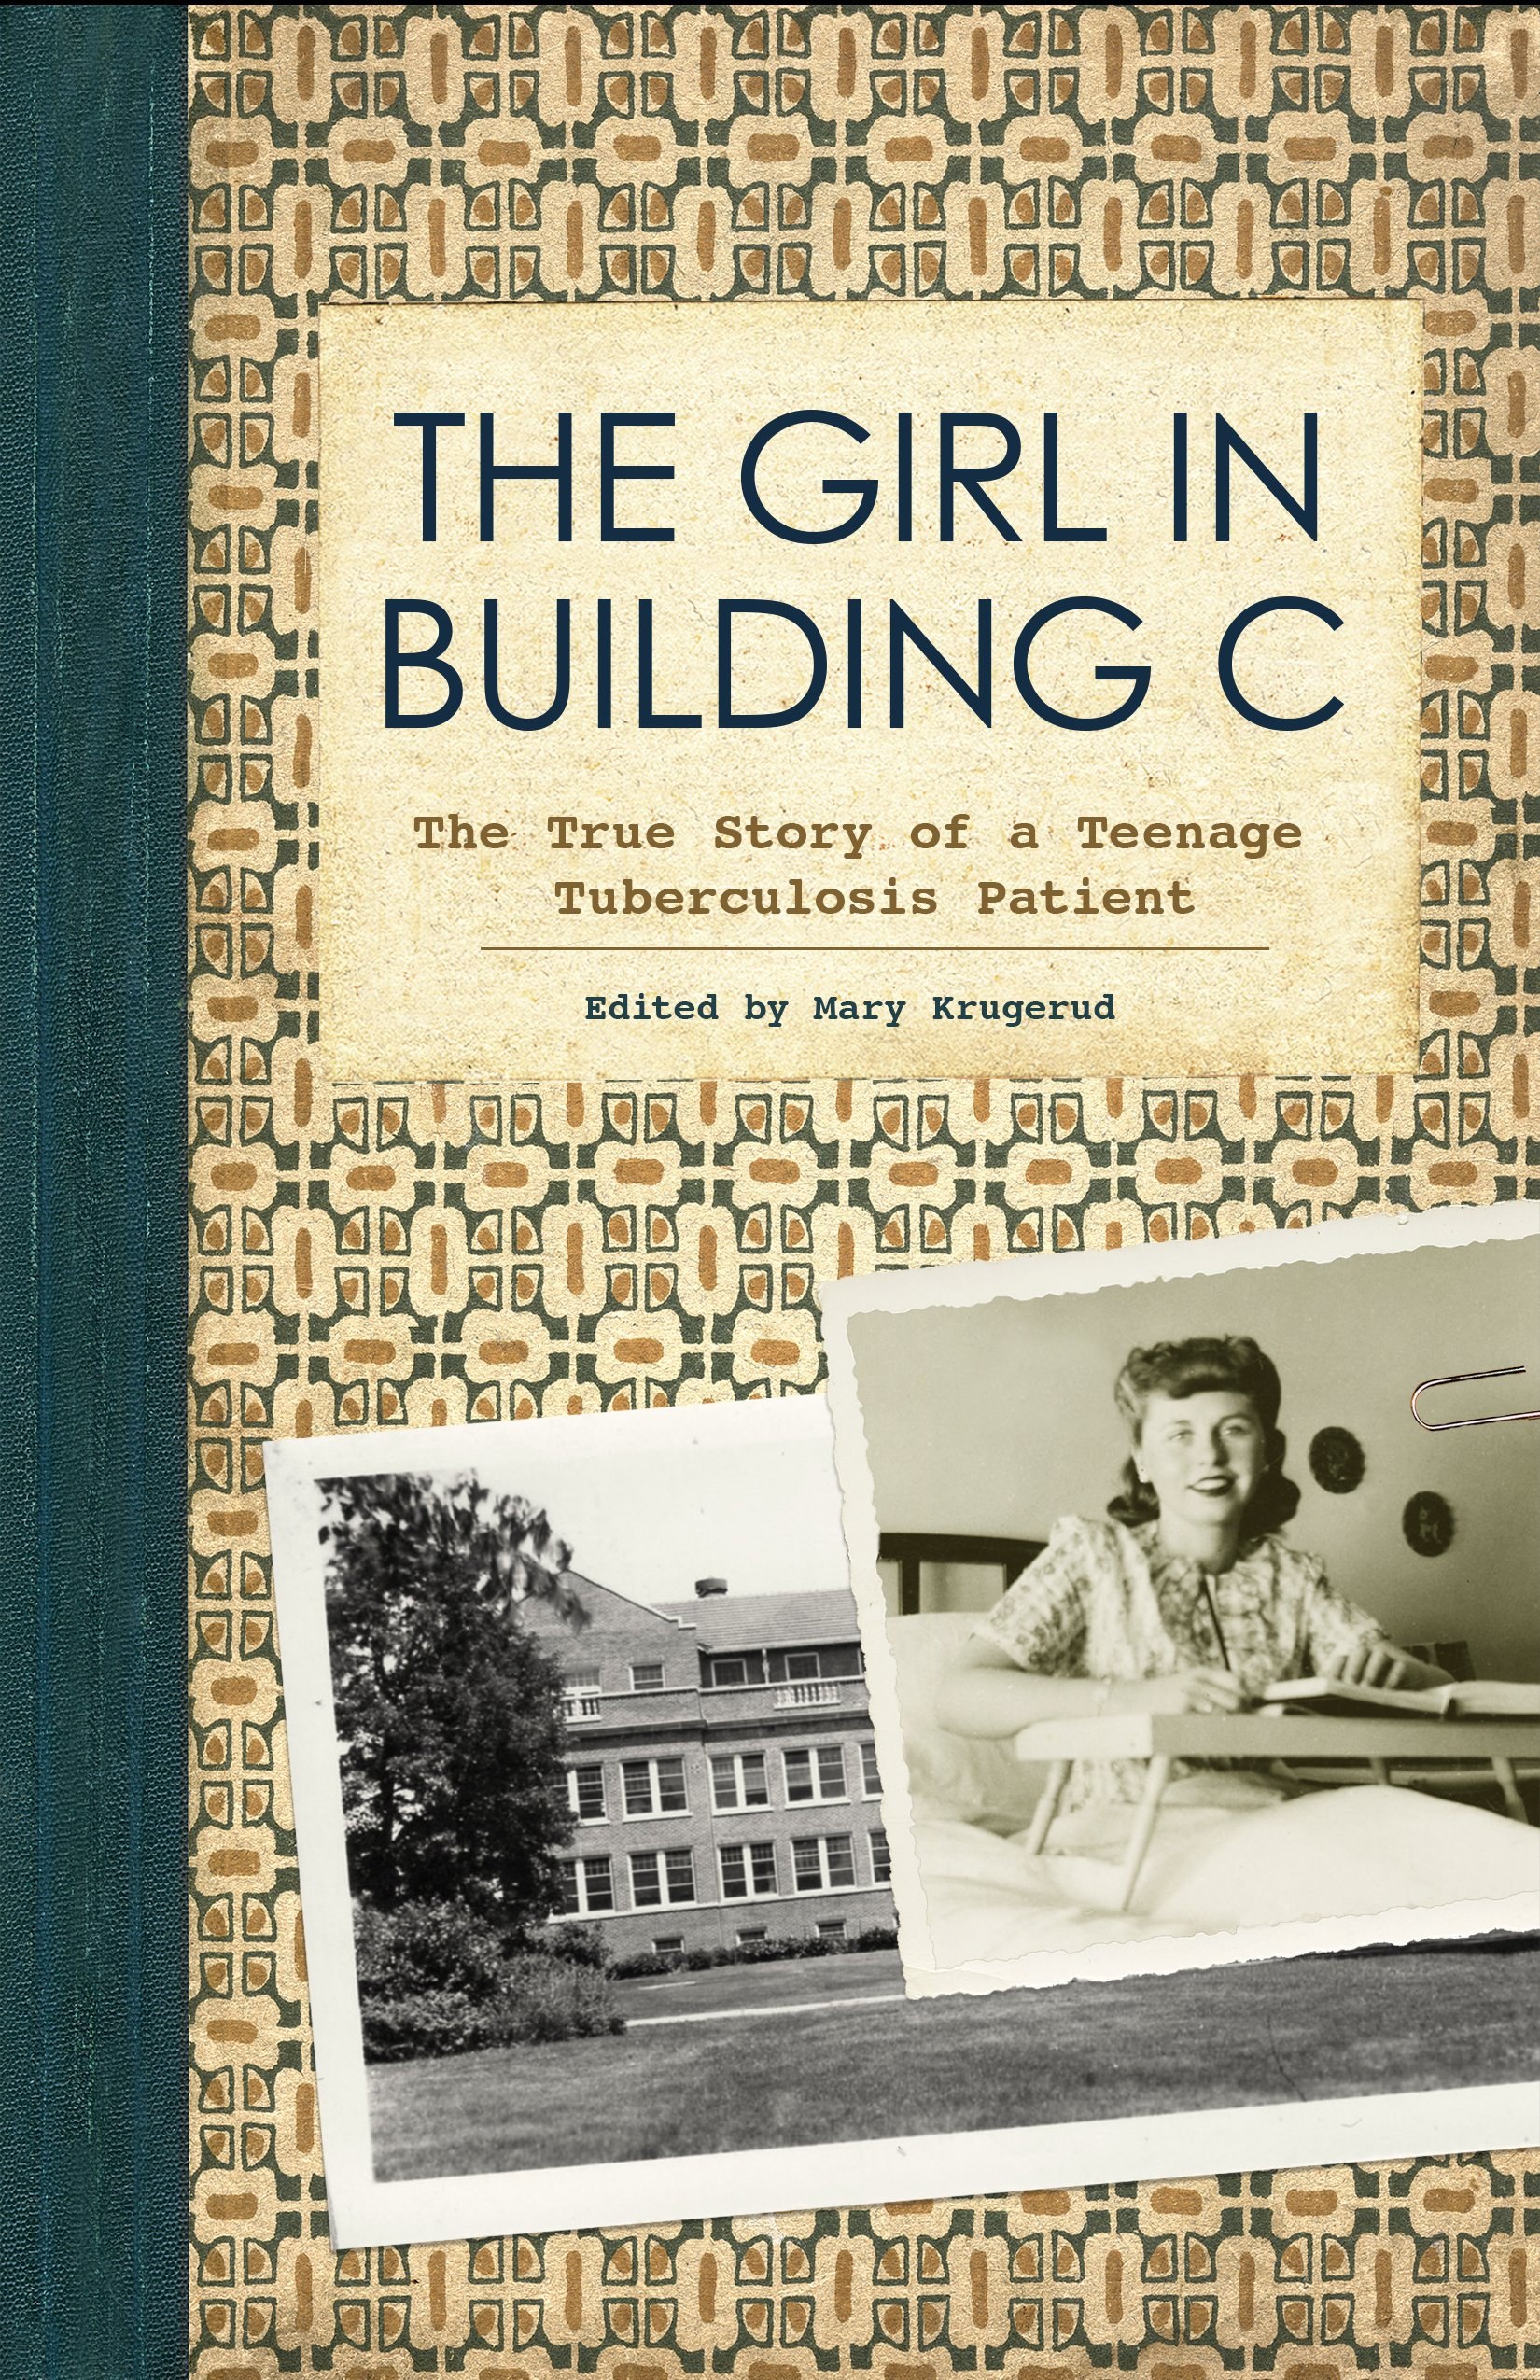 The Girl in Building C: The True Story of a Teenage Tuberculosis Patient:  Mary Krugerud: 9781681340951: Amazon.com: Books